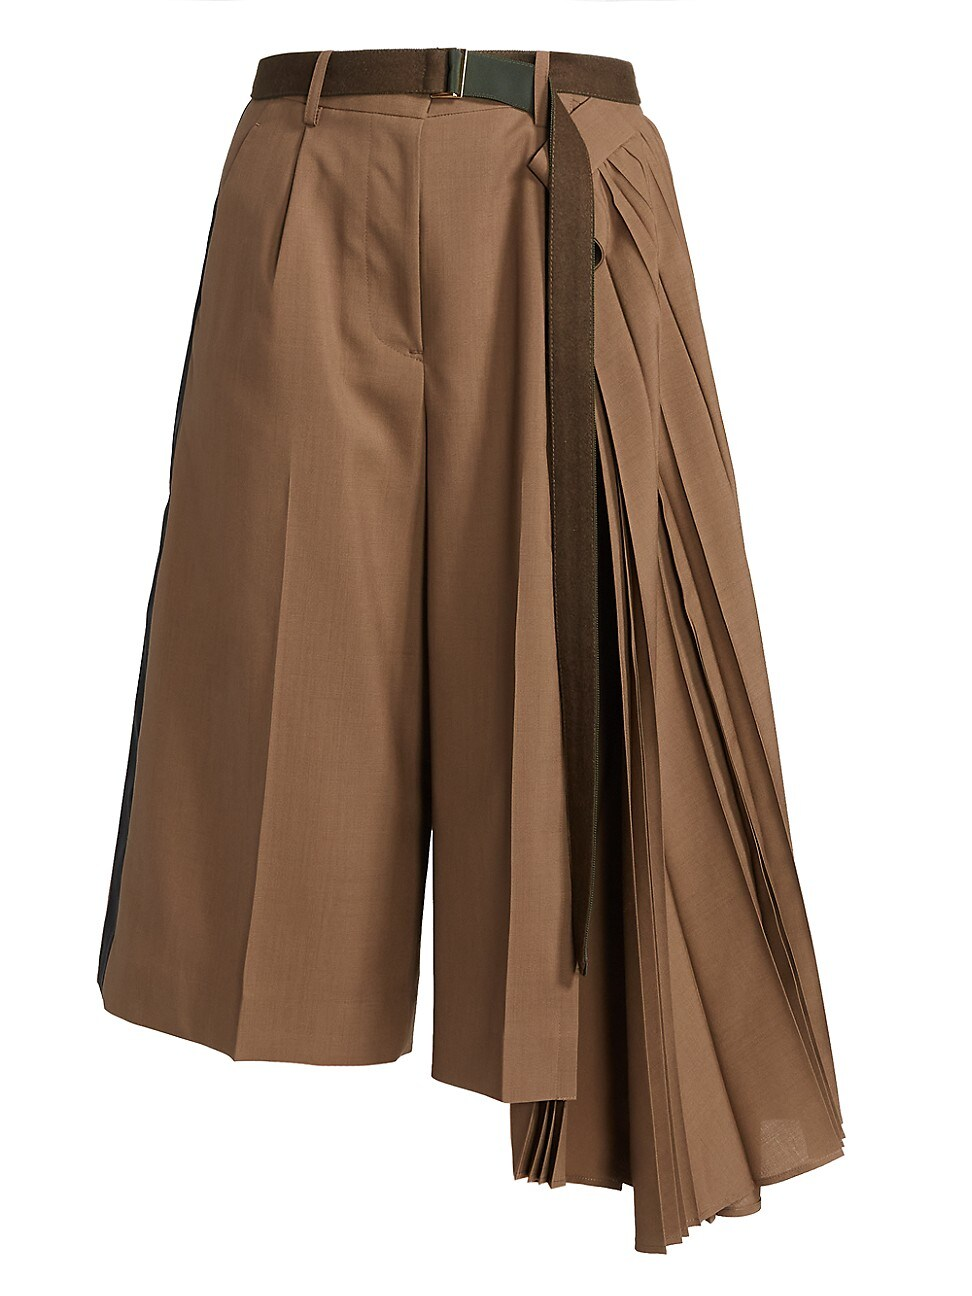 SACAI WOMEN'S CROPPED PLEATED SUITING PANTS